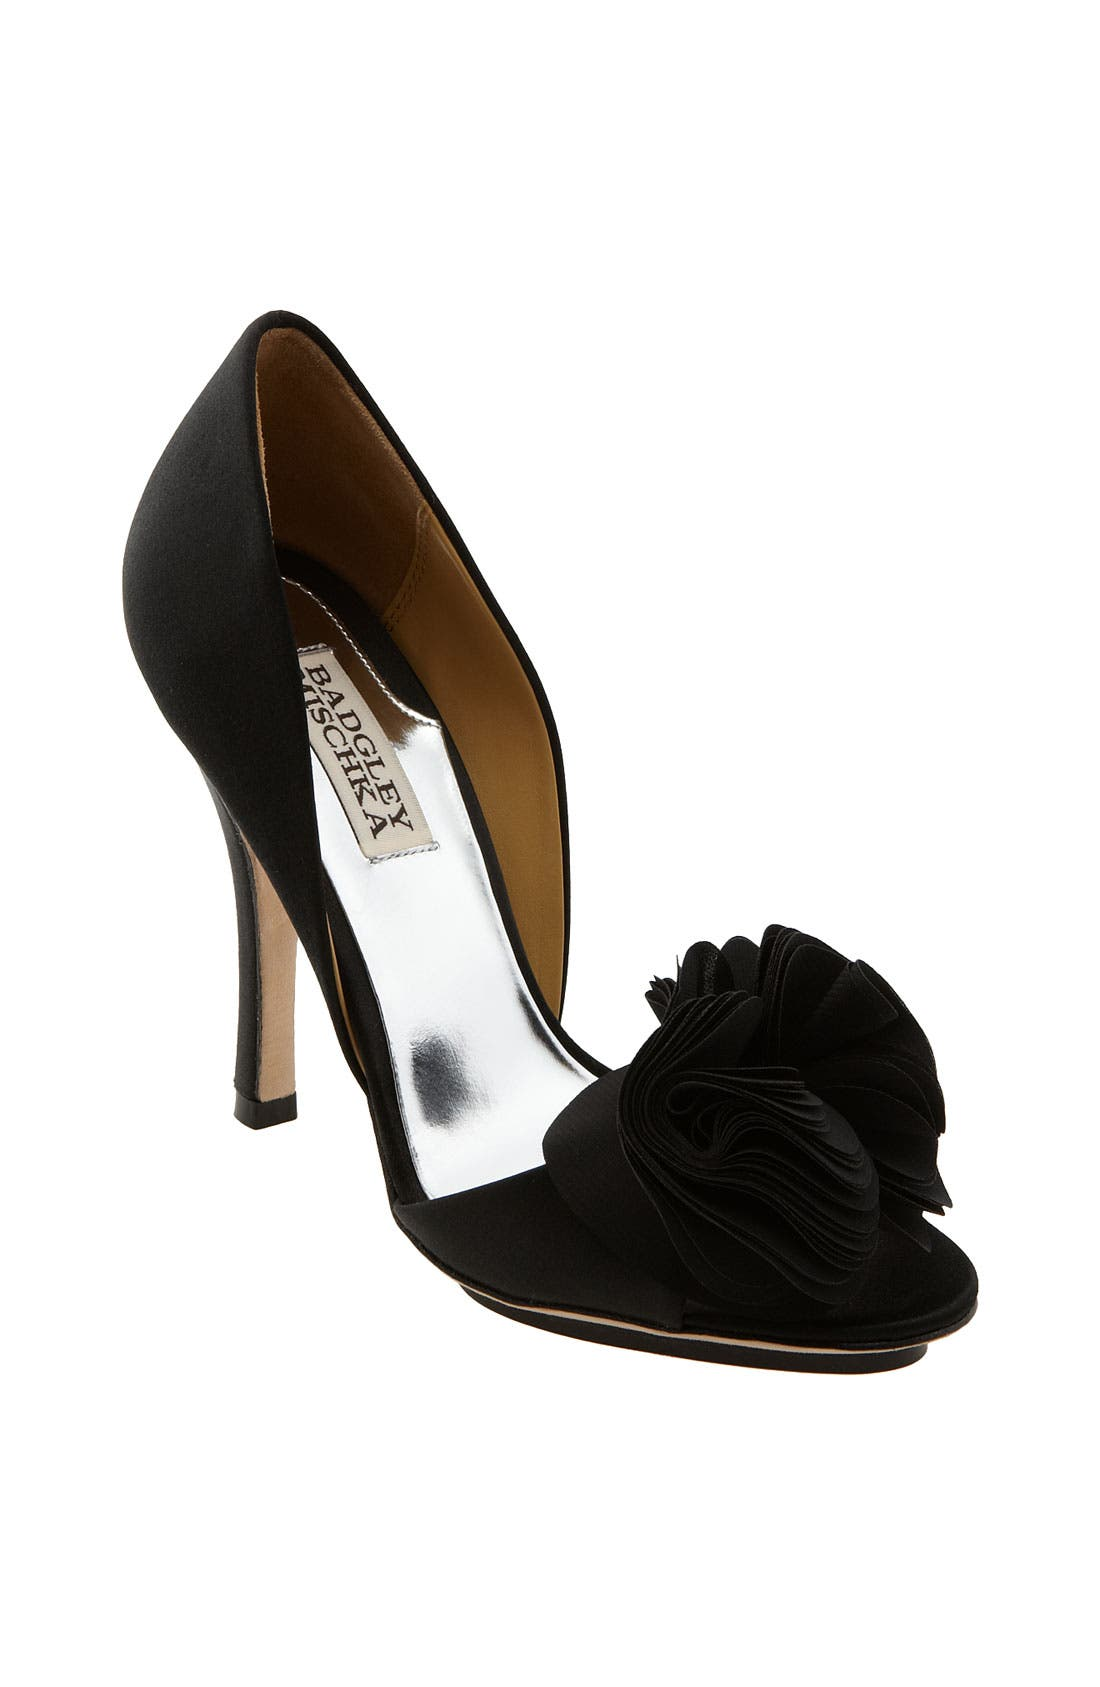 Alternate Image 1 Selected - Badgley Mischka 'Randall' Pump